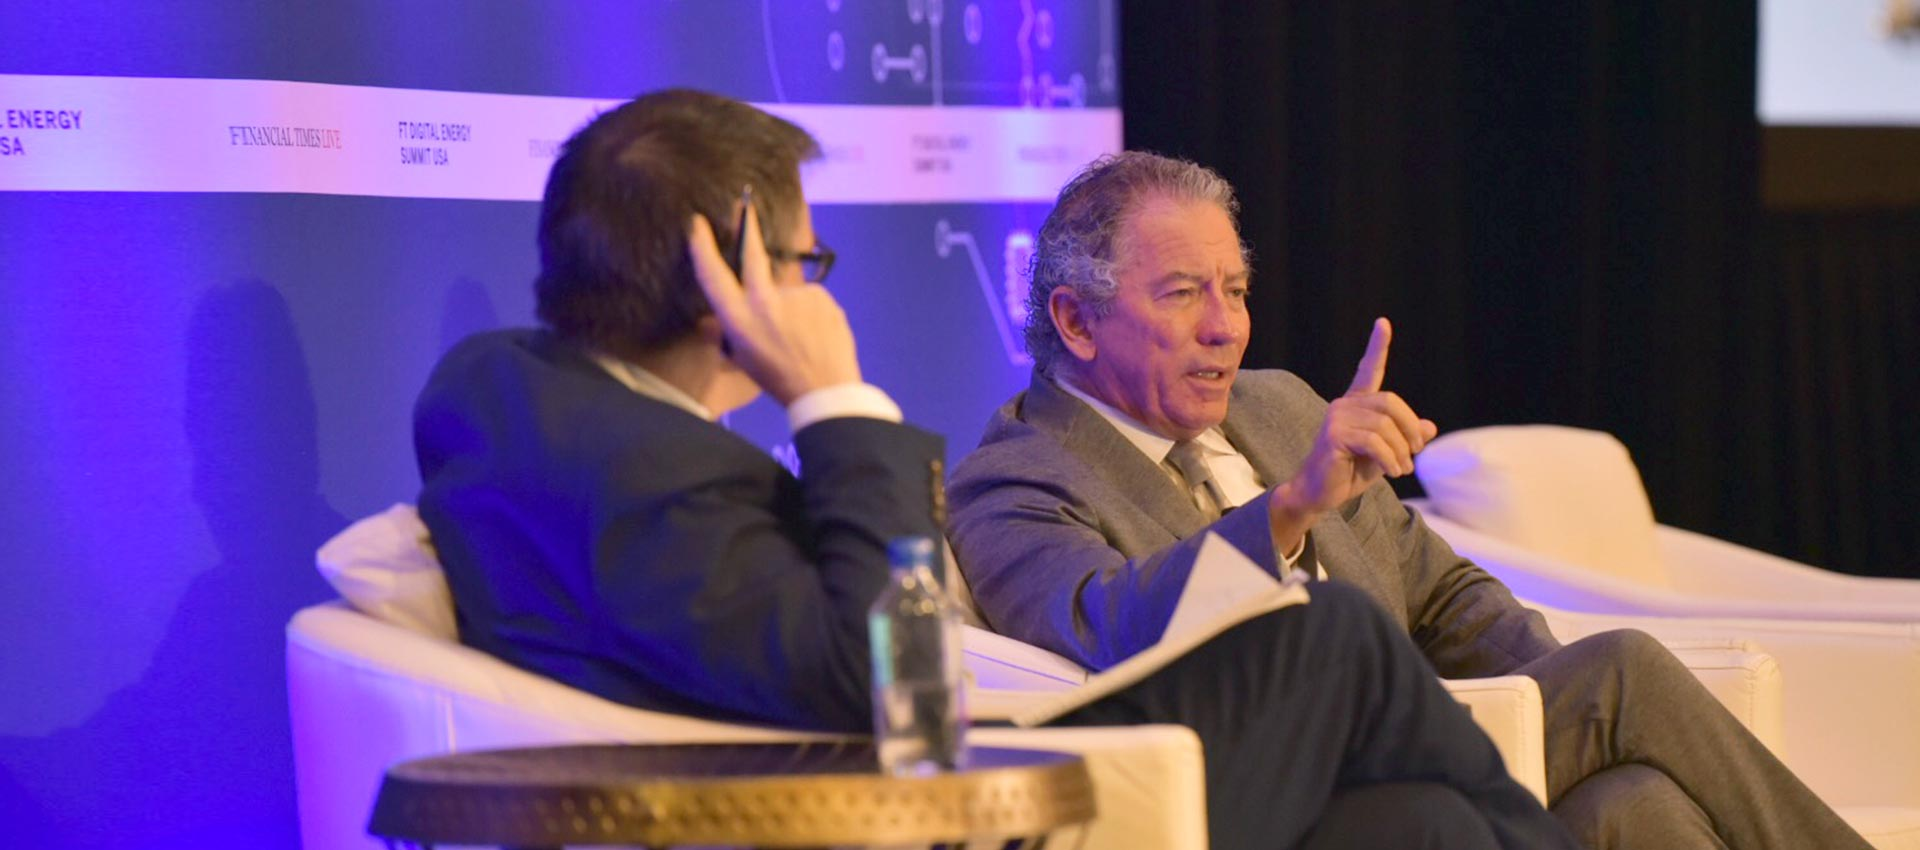 C3 CEO Tom Siebel discusses transforming oil & gas at the FT Digital Energy Summit in Houston